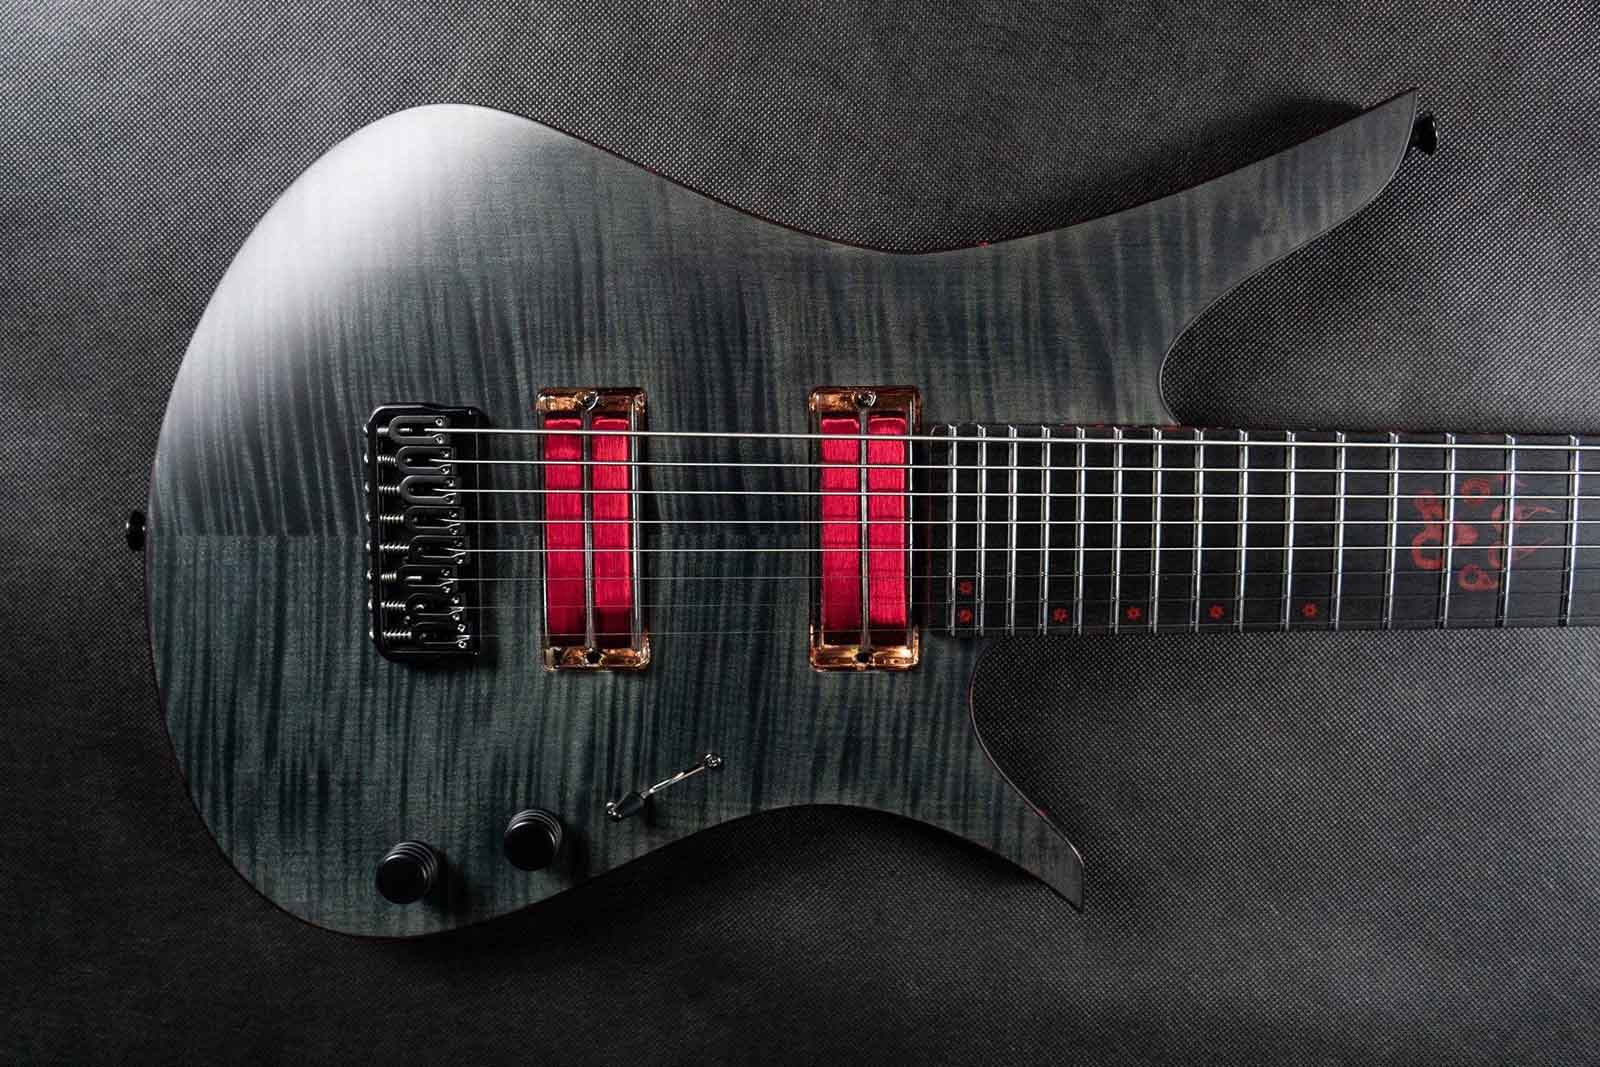 Beautiful Blackat guitar made by Tomek Sławiński with transparent neodymium q-tuners q2.0 neodymium pickups